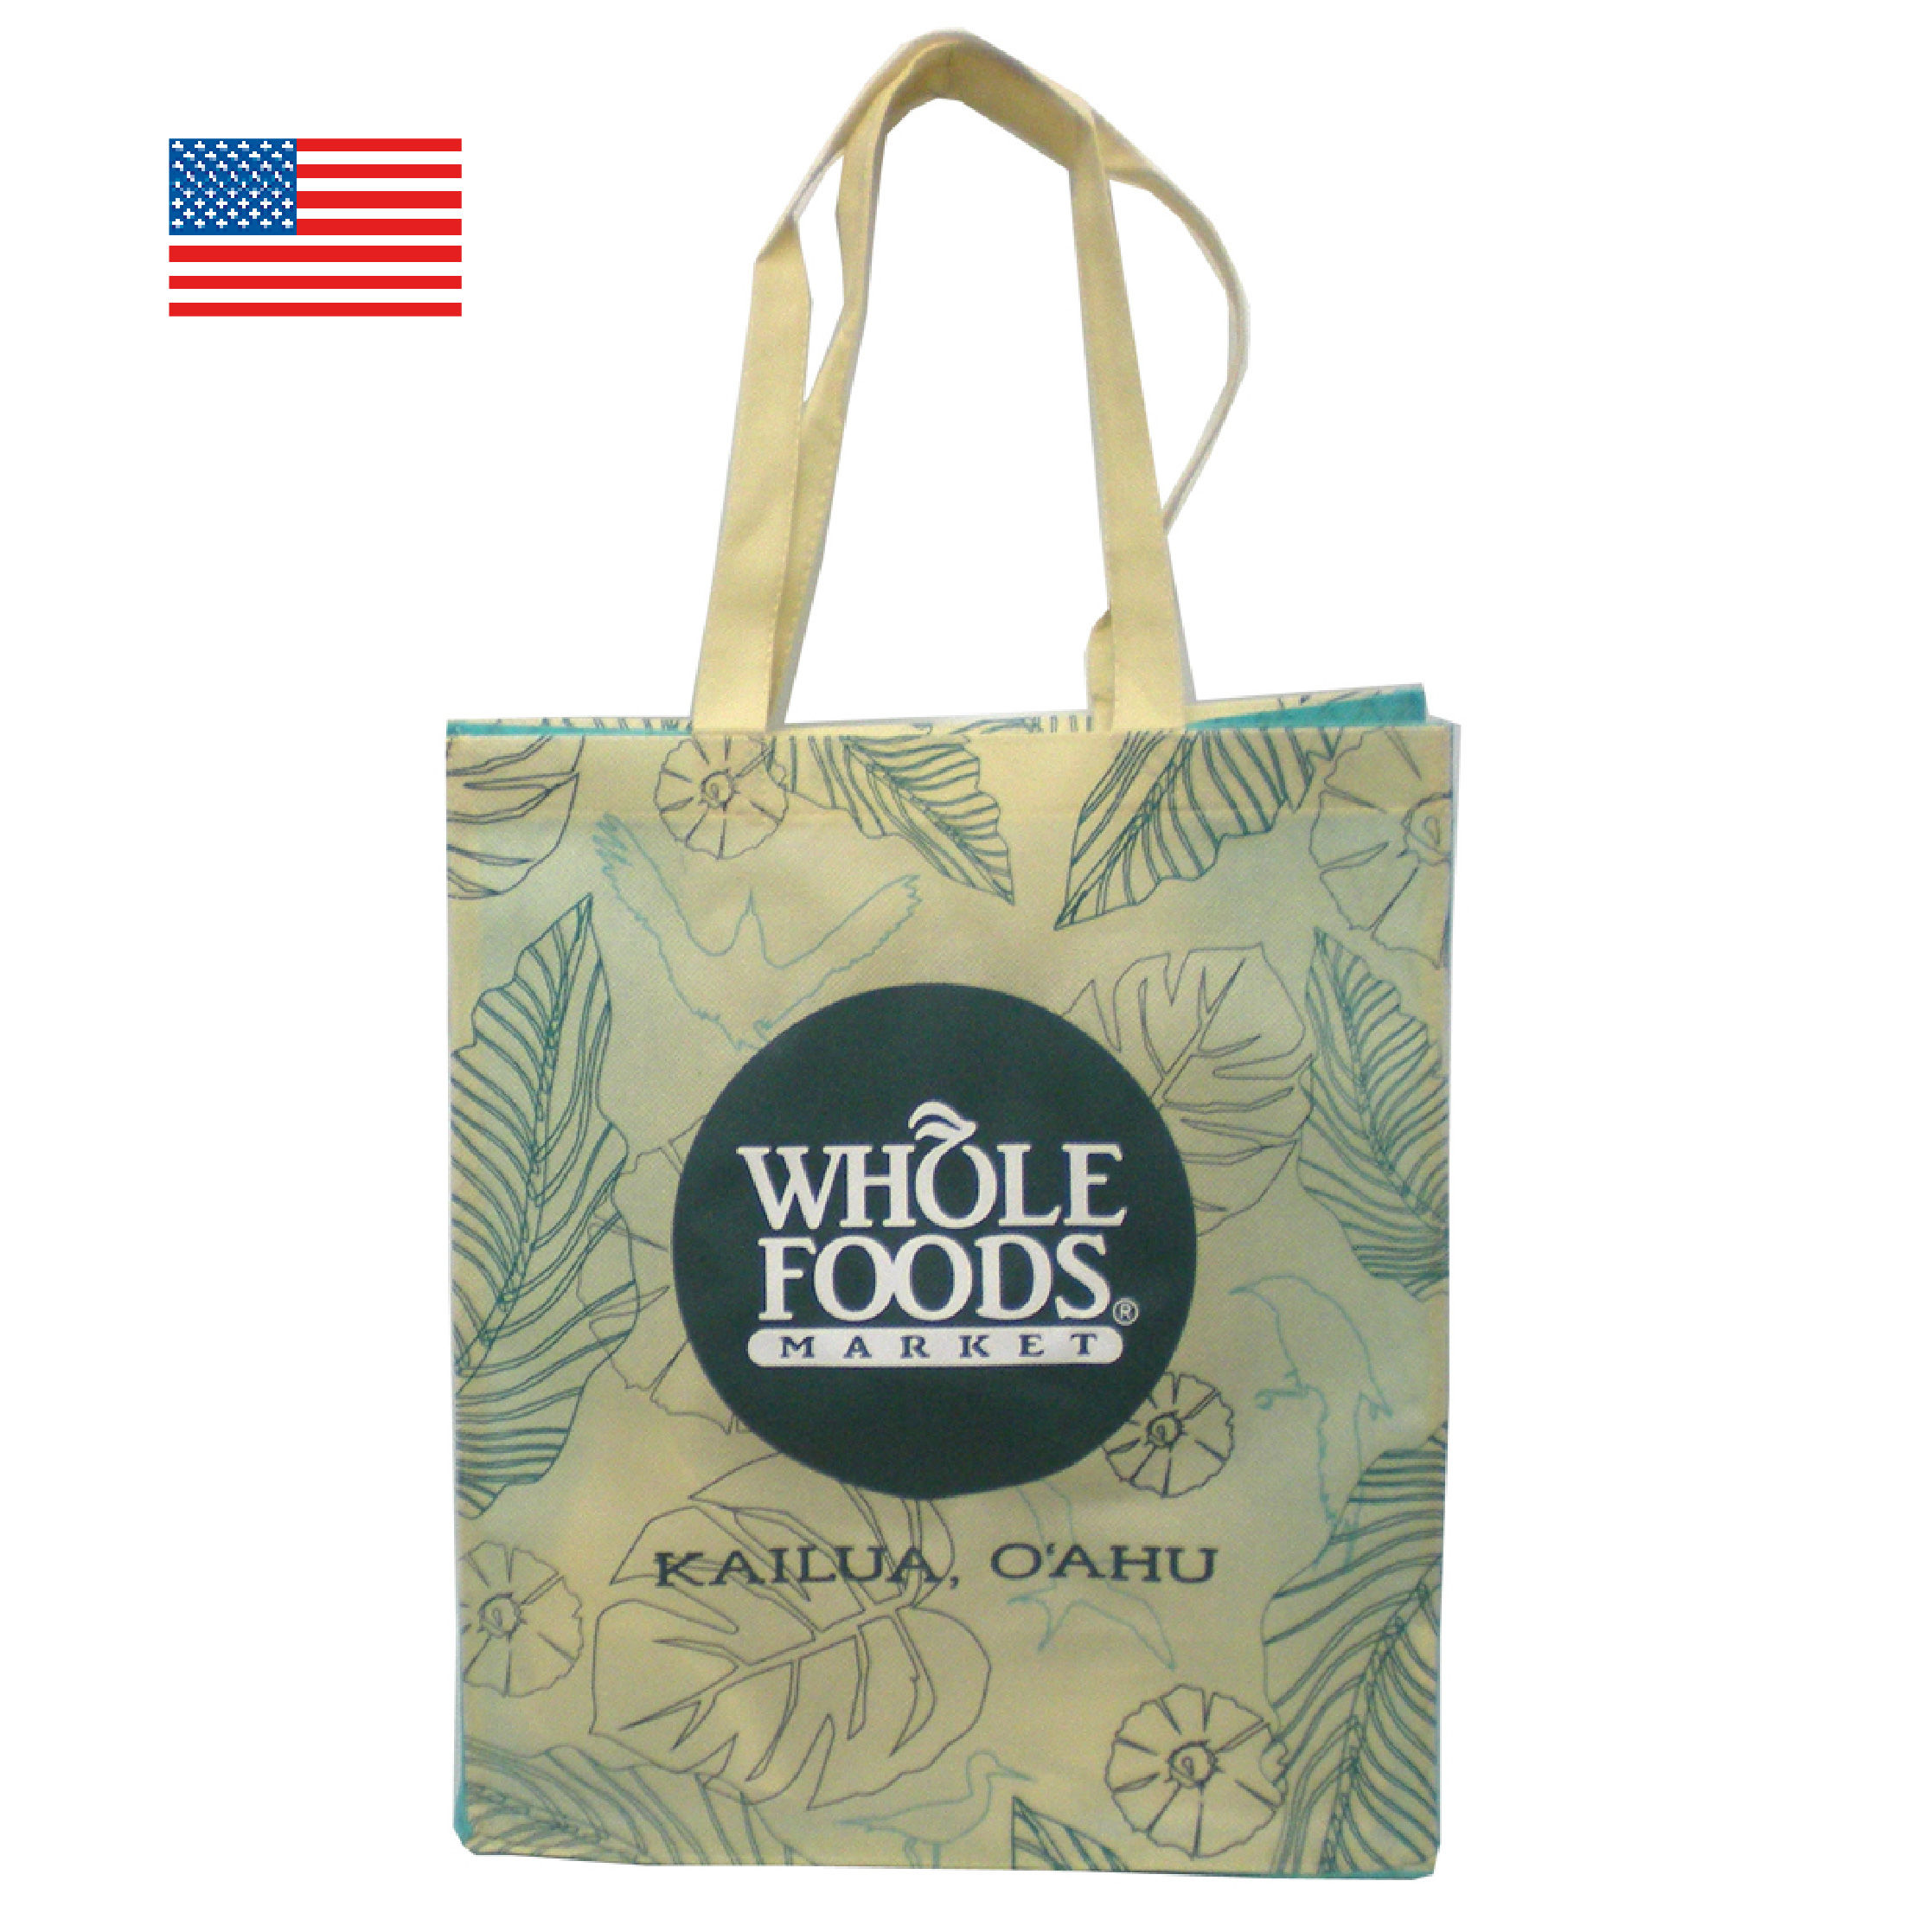 WHOLE FOODS ホールフーズ エコバッグ/カイルア 【アメリカ直輸入】